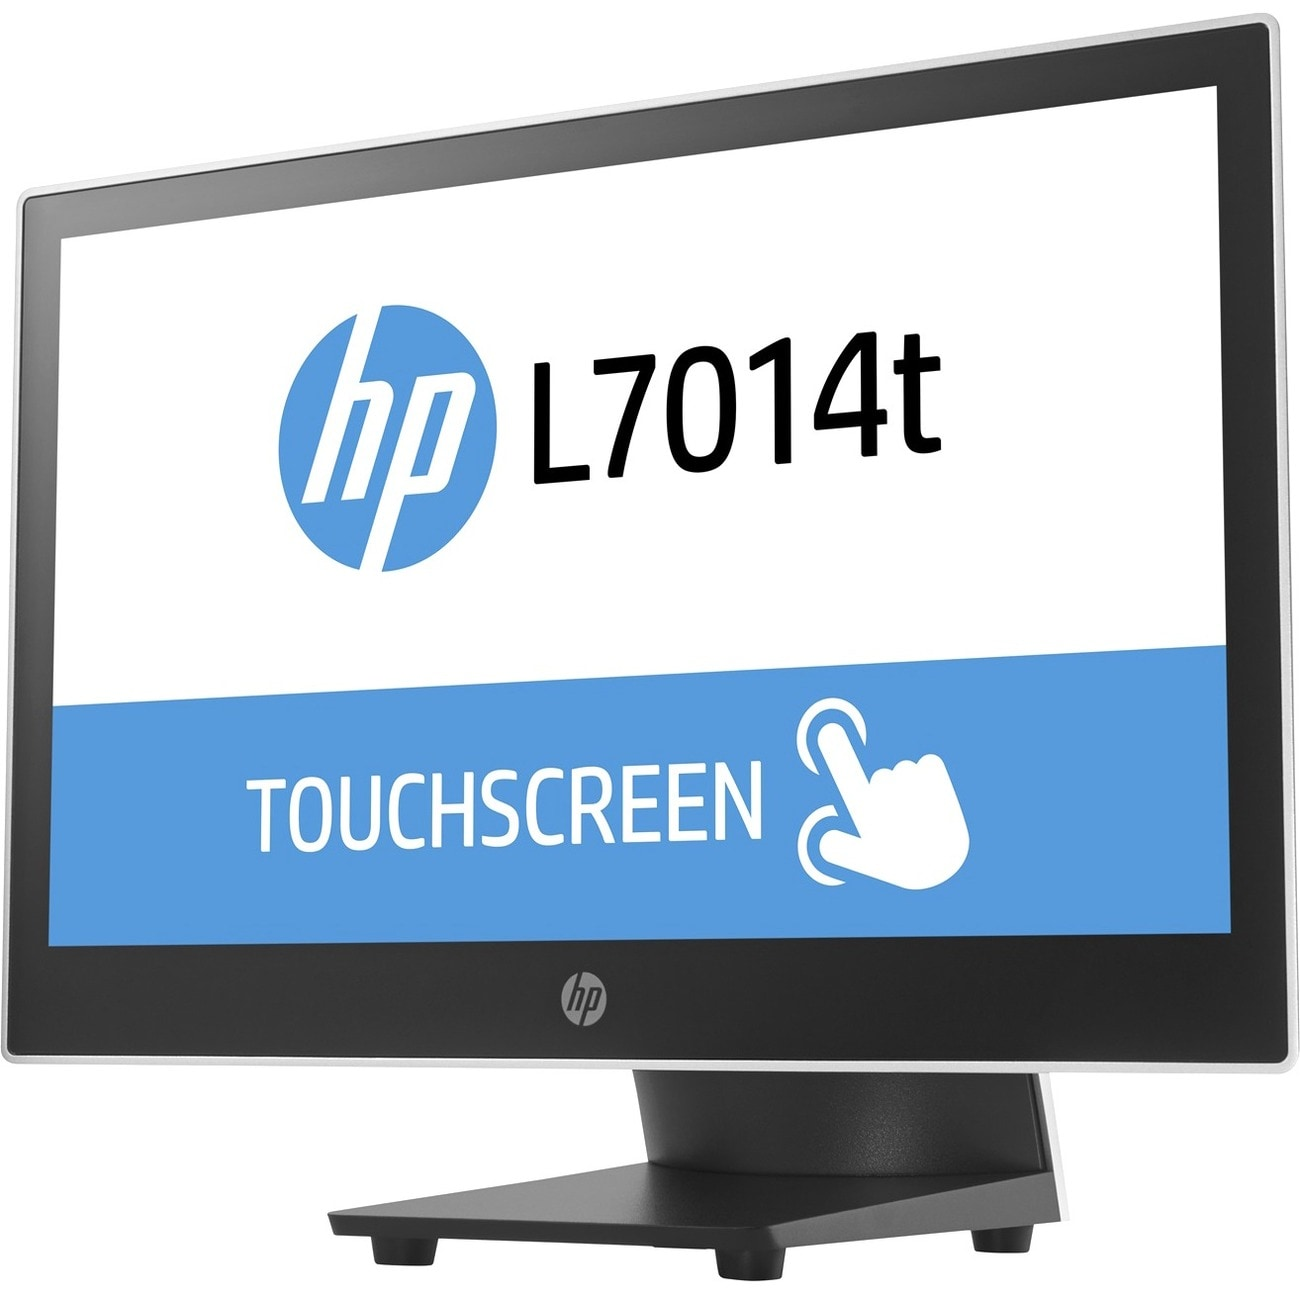 "HP L7014t 14"" LED Touchscreen Monitor - 16:9 - 16 ms"